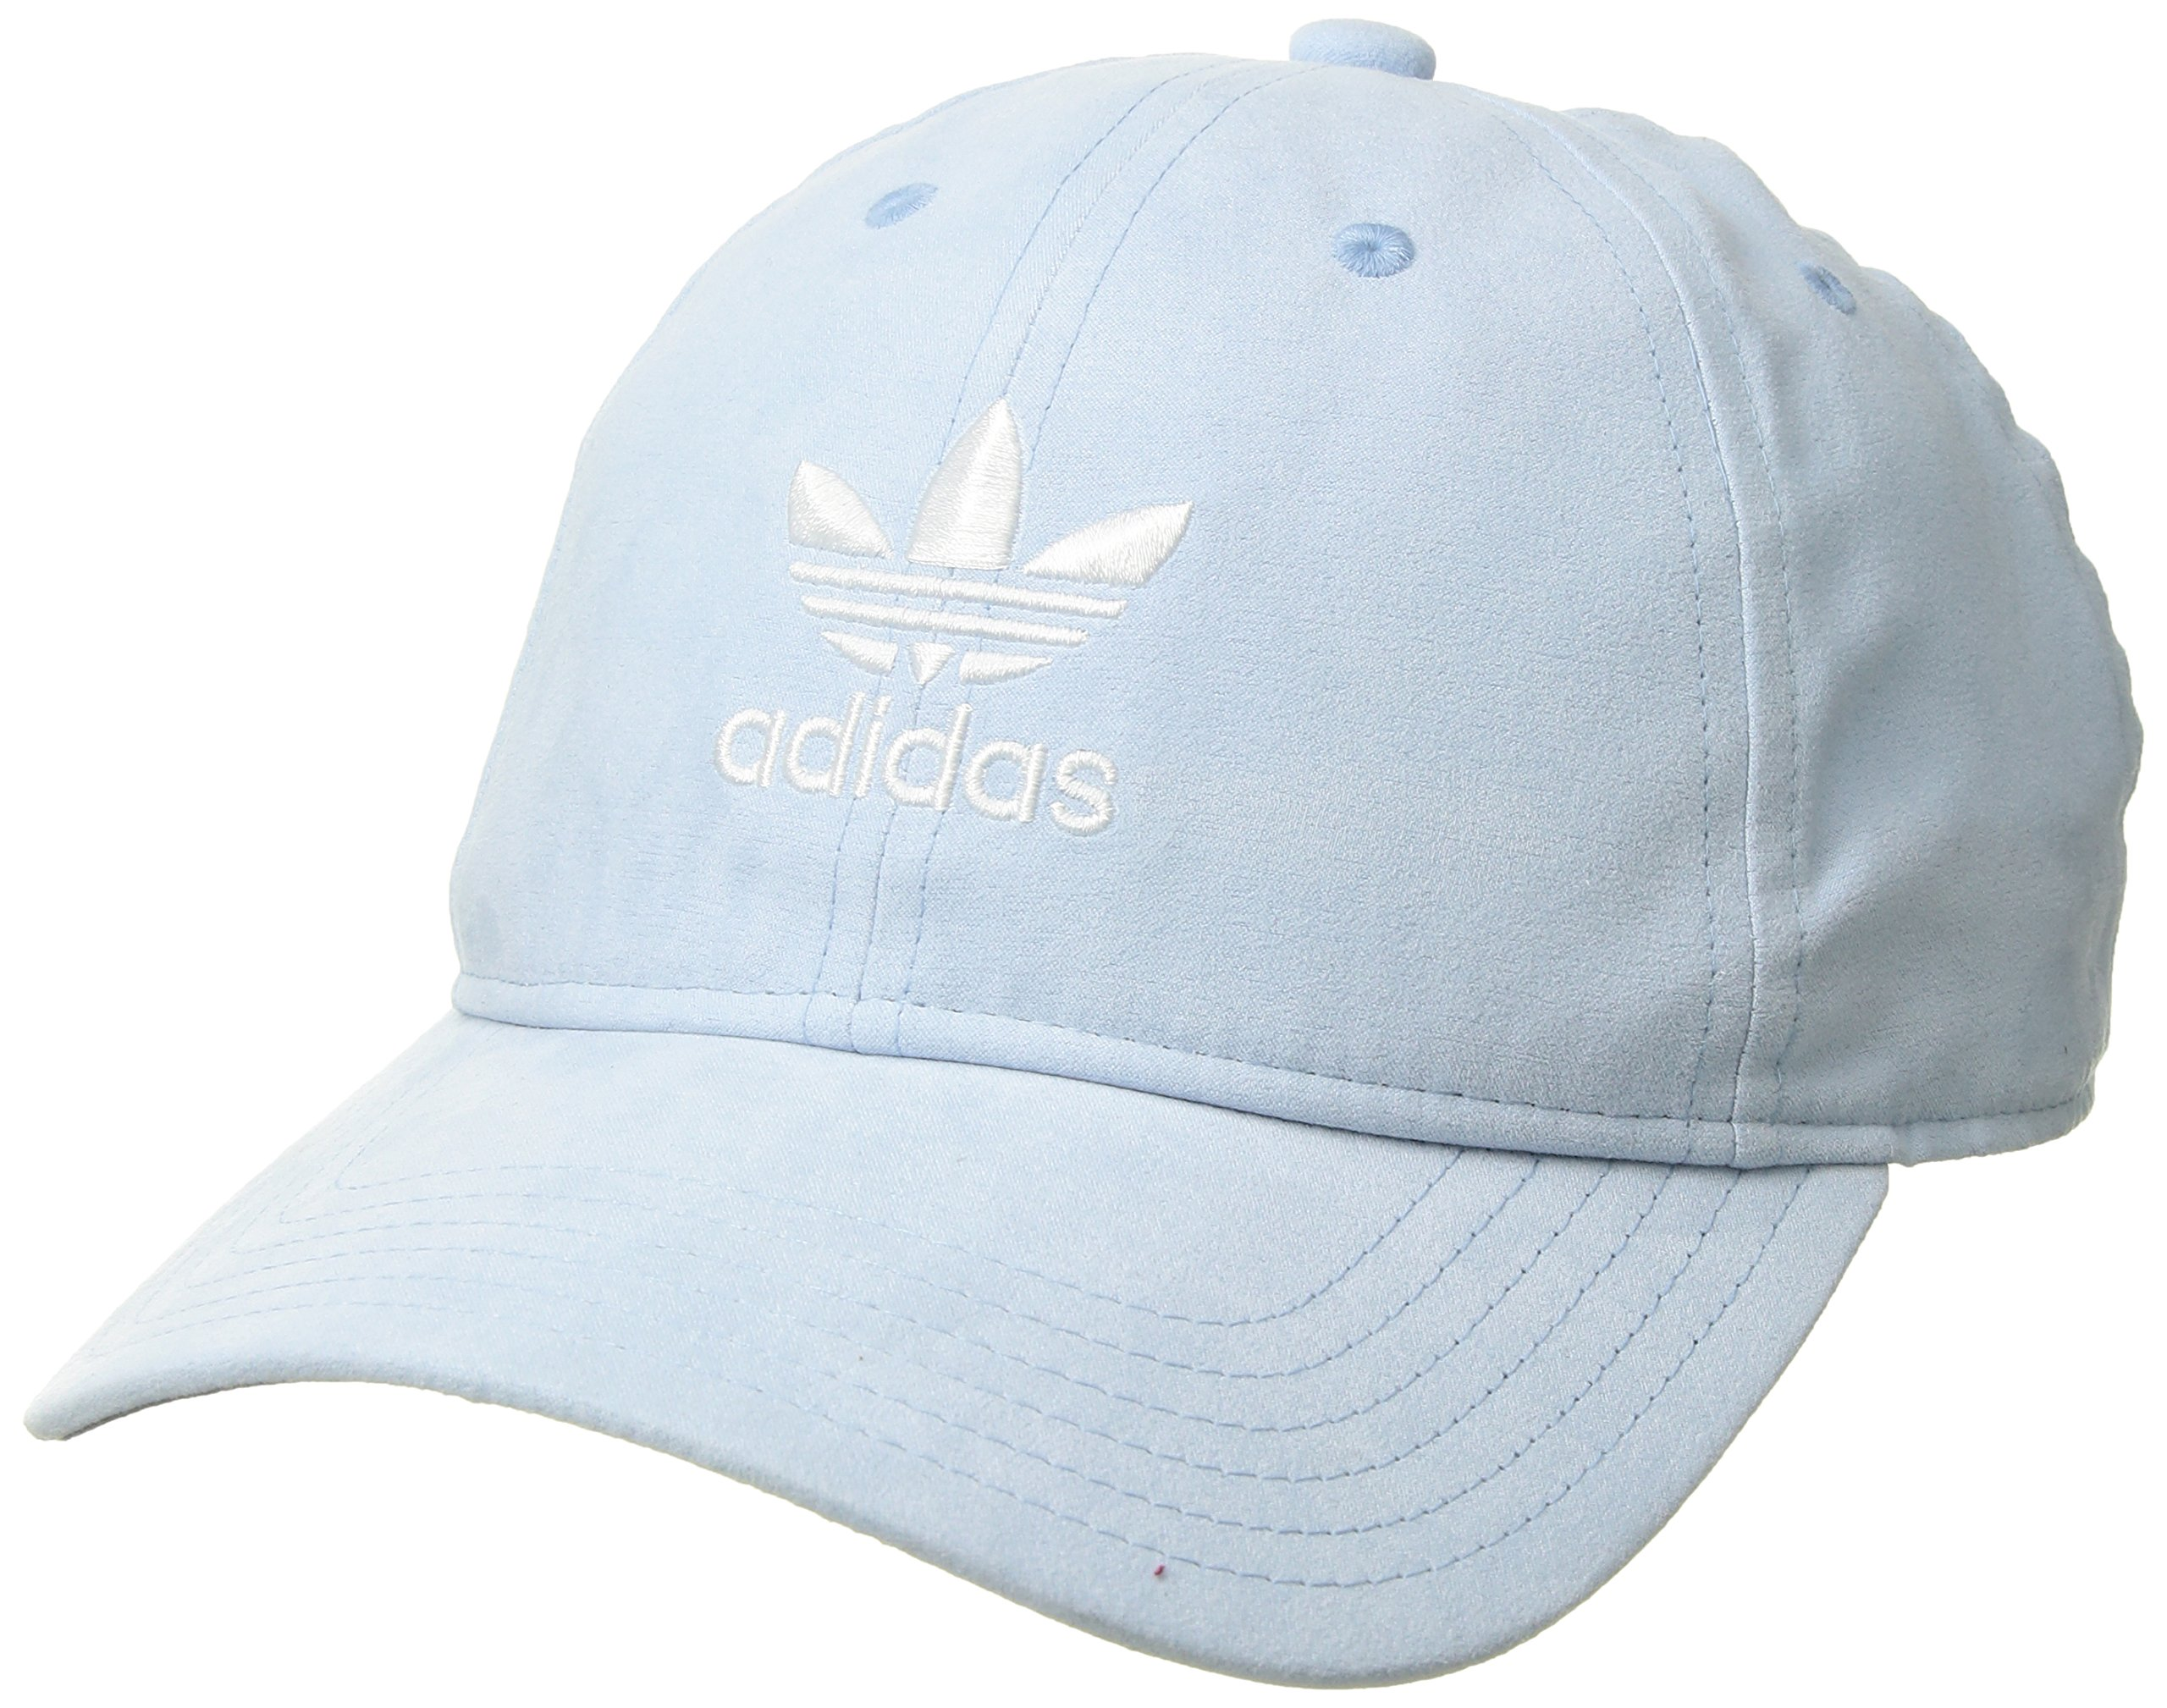 adidas Women's Originals Relaxed Plus Adjustable Strapback Cap, Aero Blue Suede/White, One Size by adidas (Image #1)